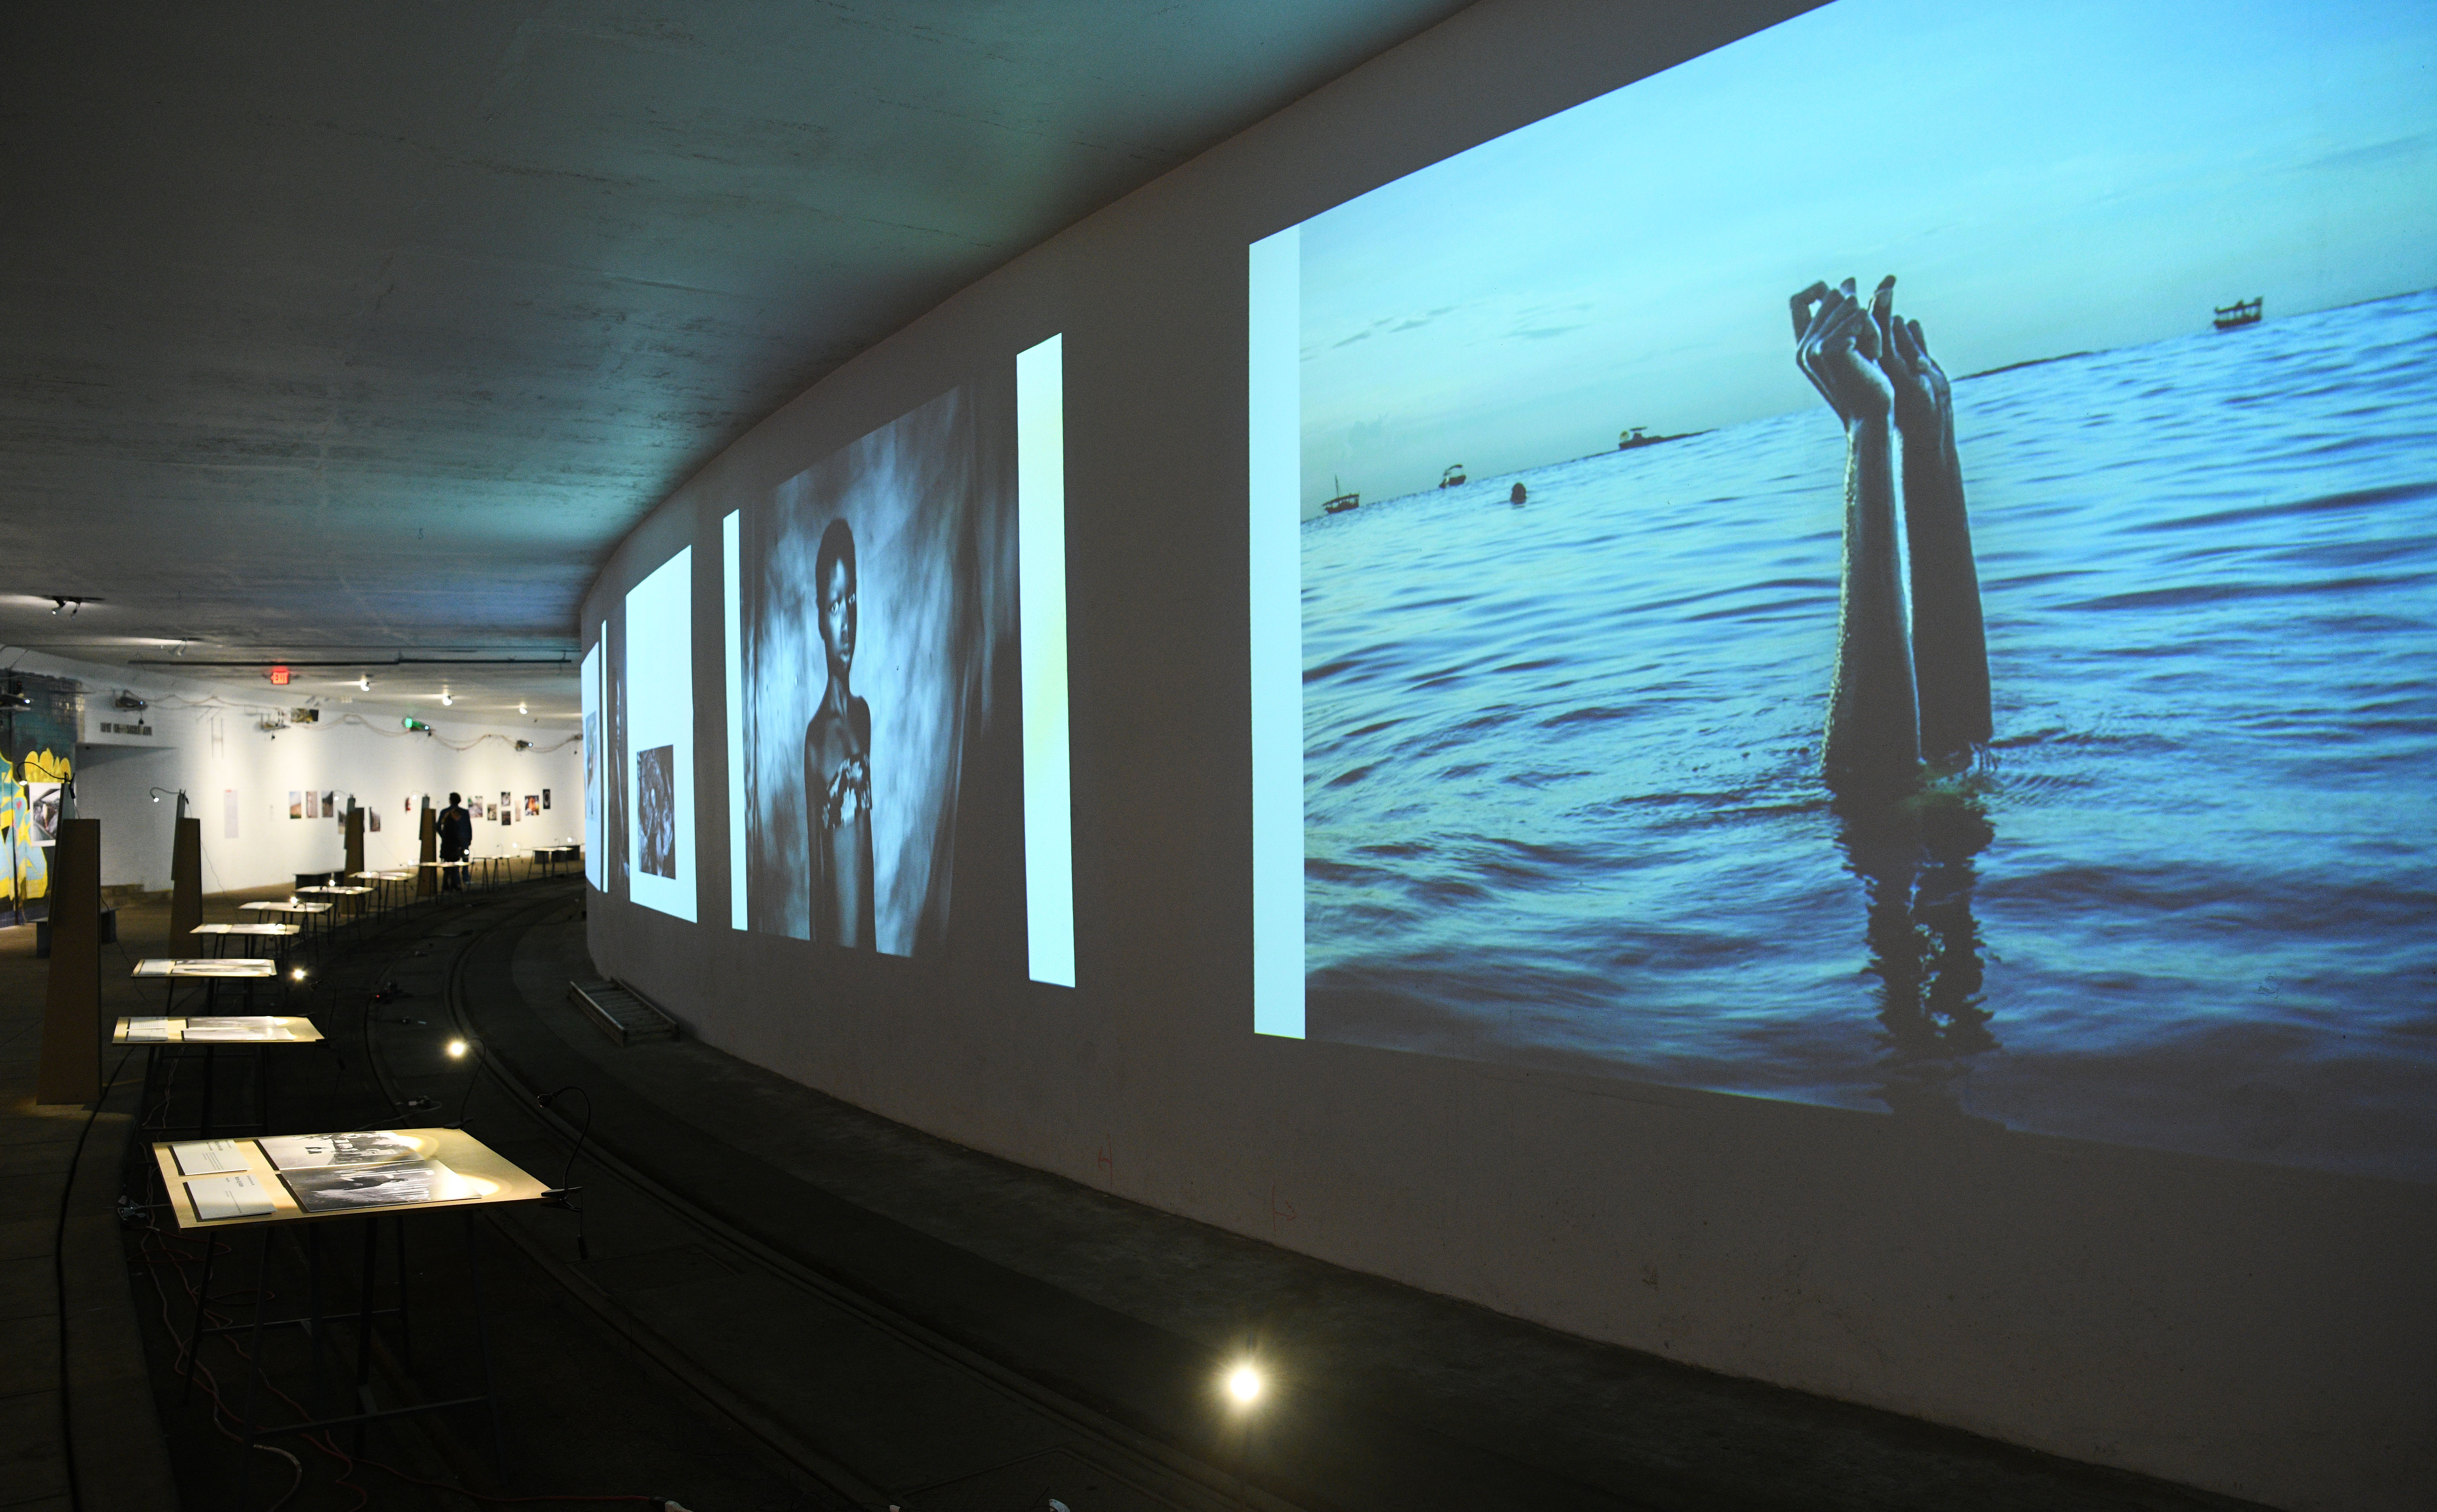 A photo exhibition displayed along the walls of an underground tunnel. One of the photos shows a pair of arms reaching up from a body of water.